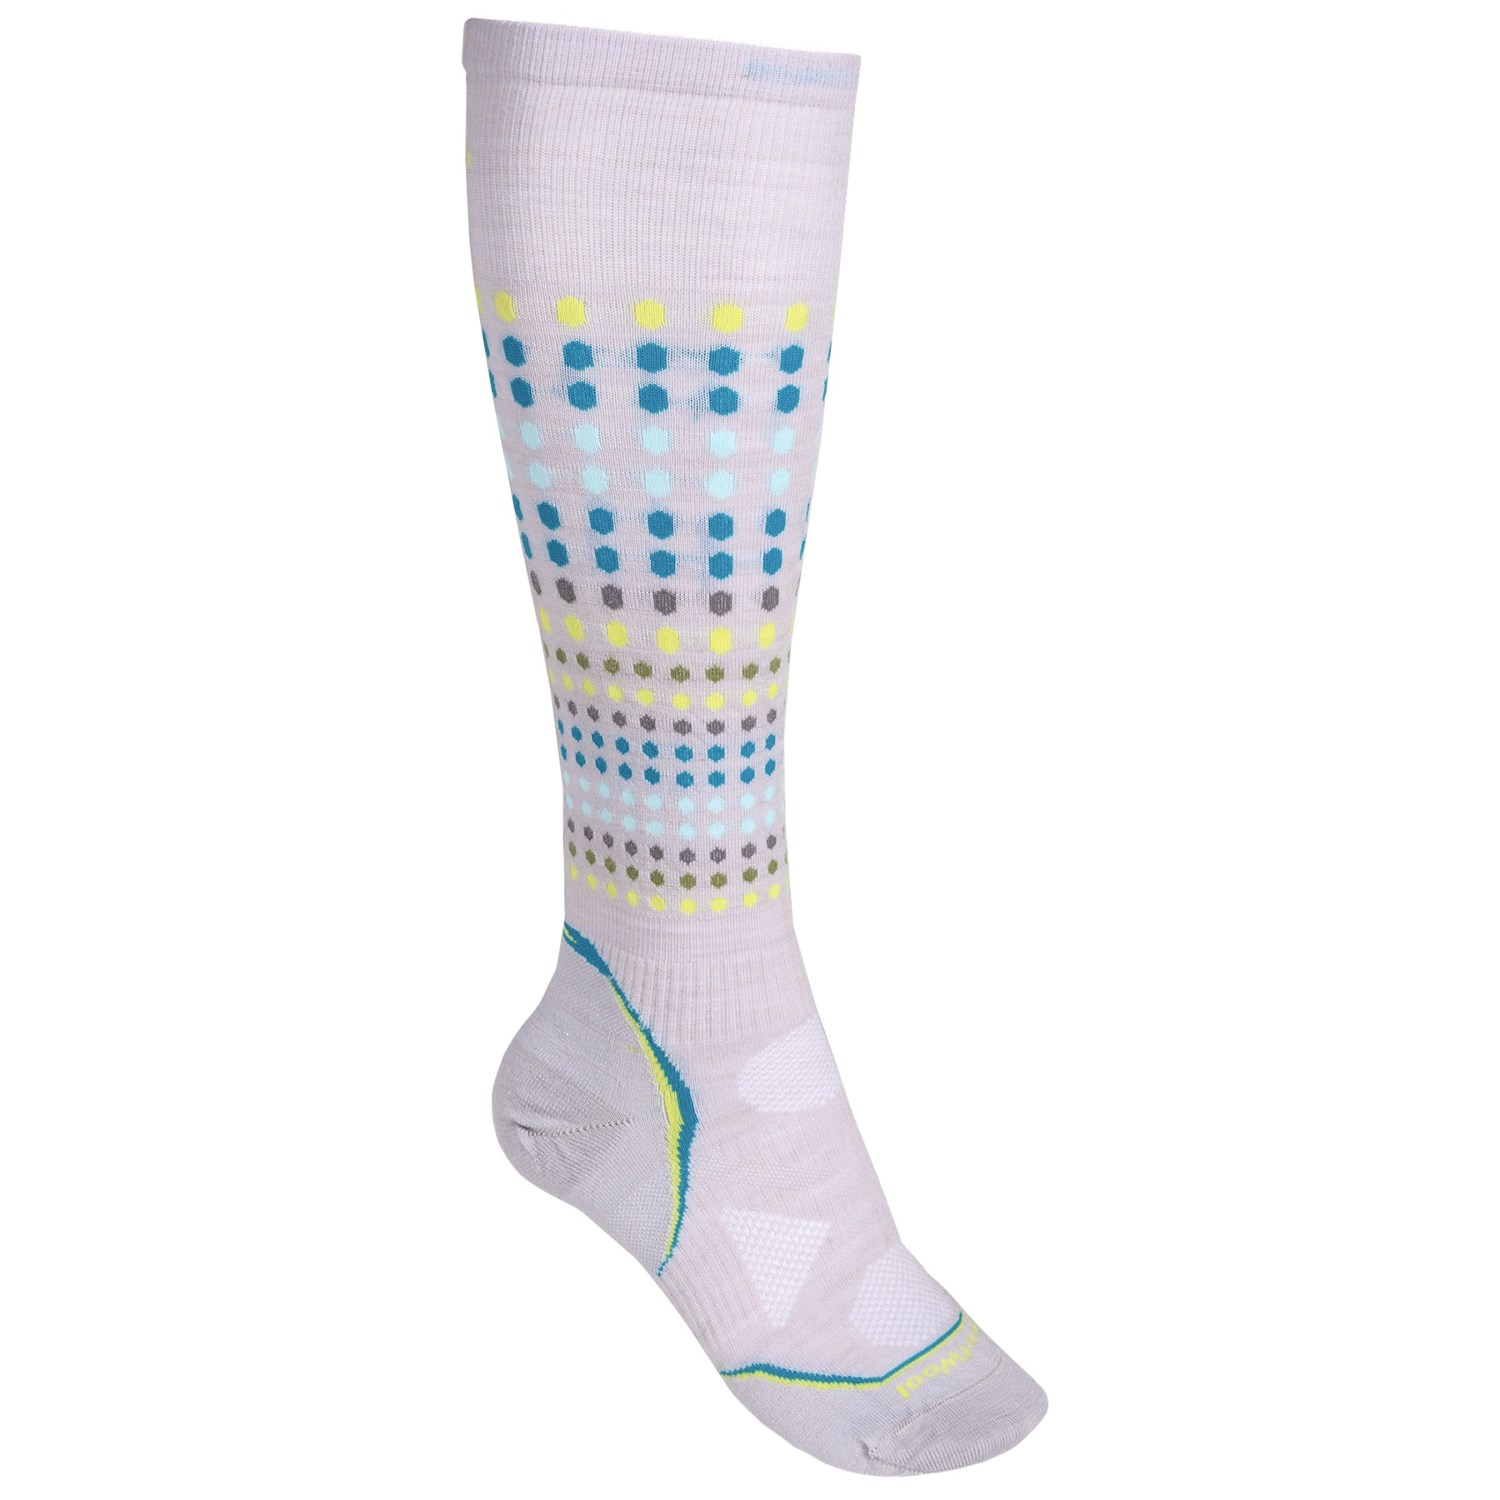 Knee-High Socks have terry knit feet and shafts.